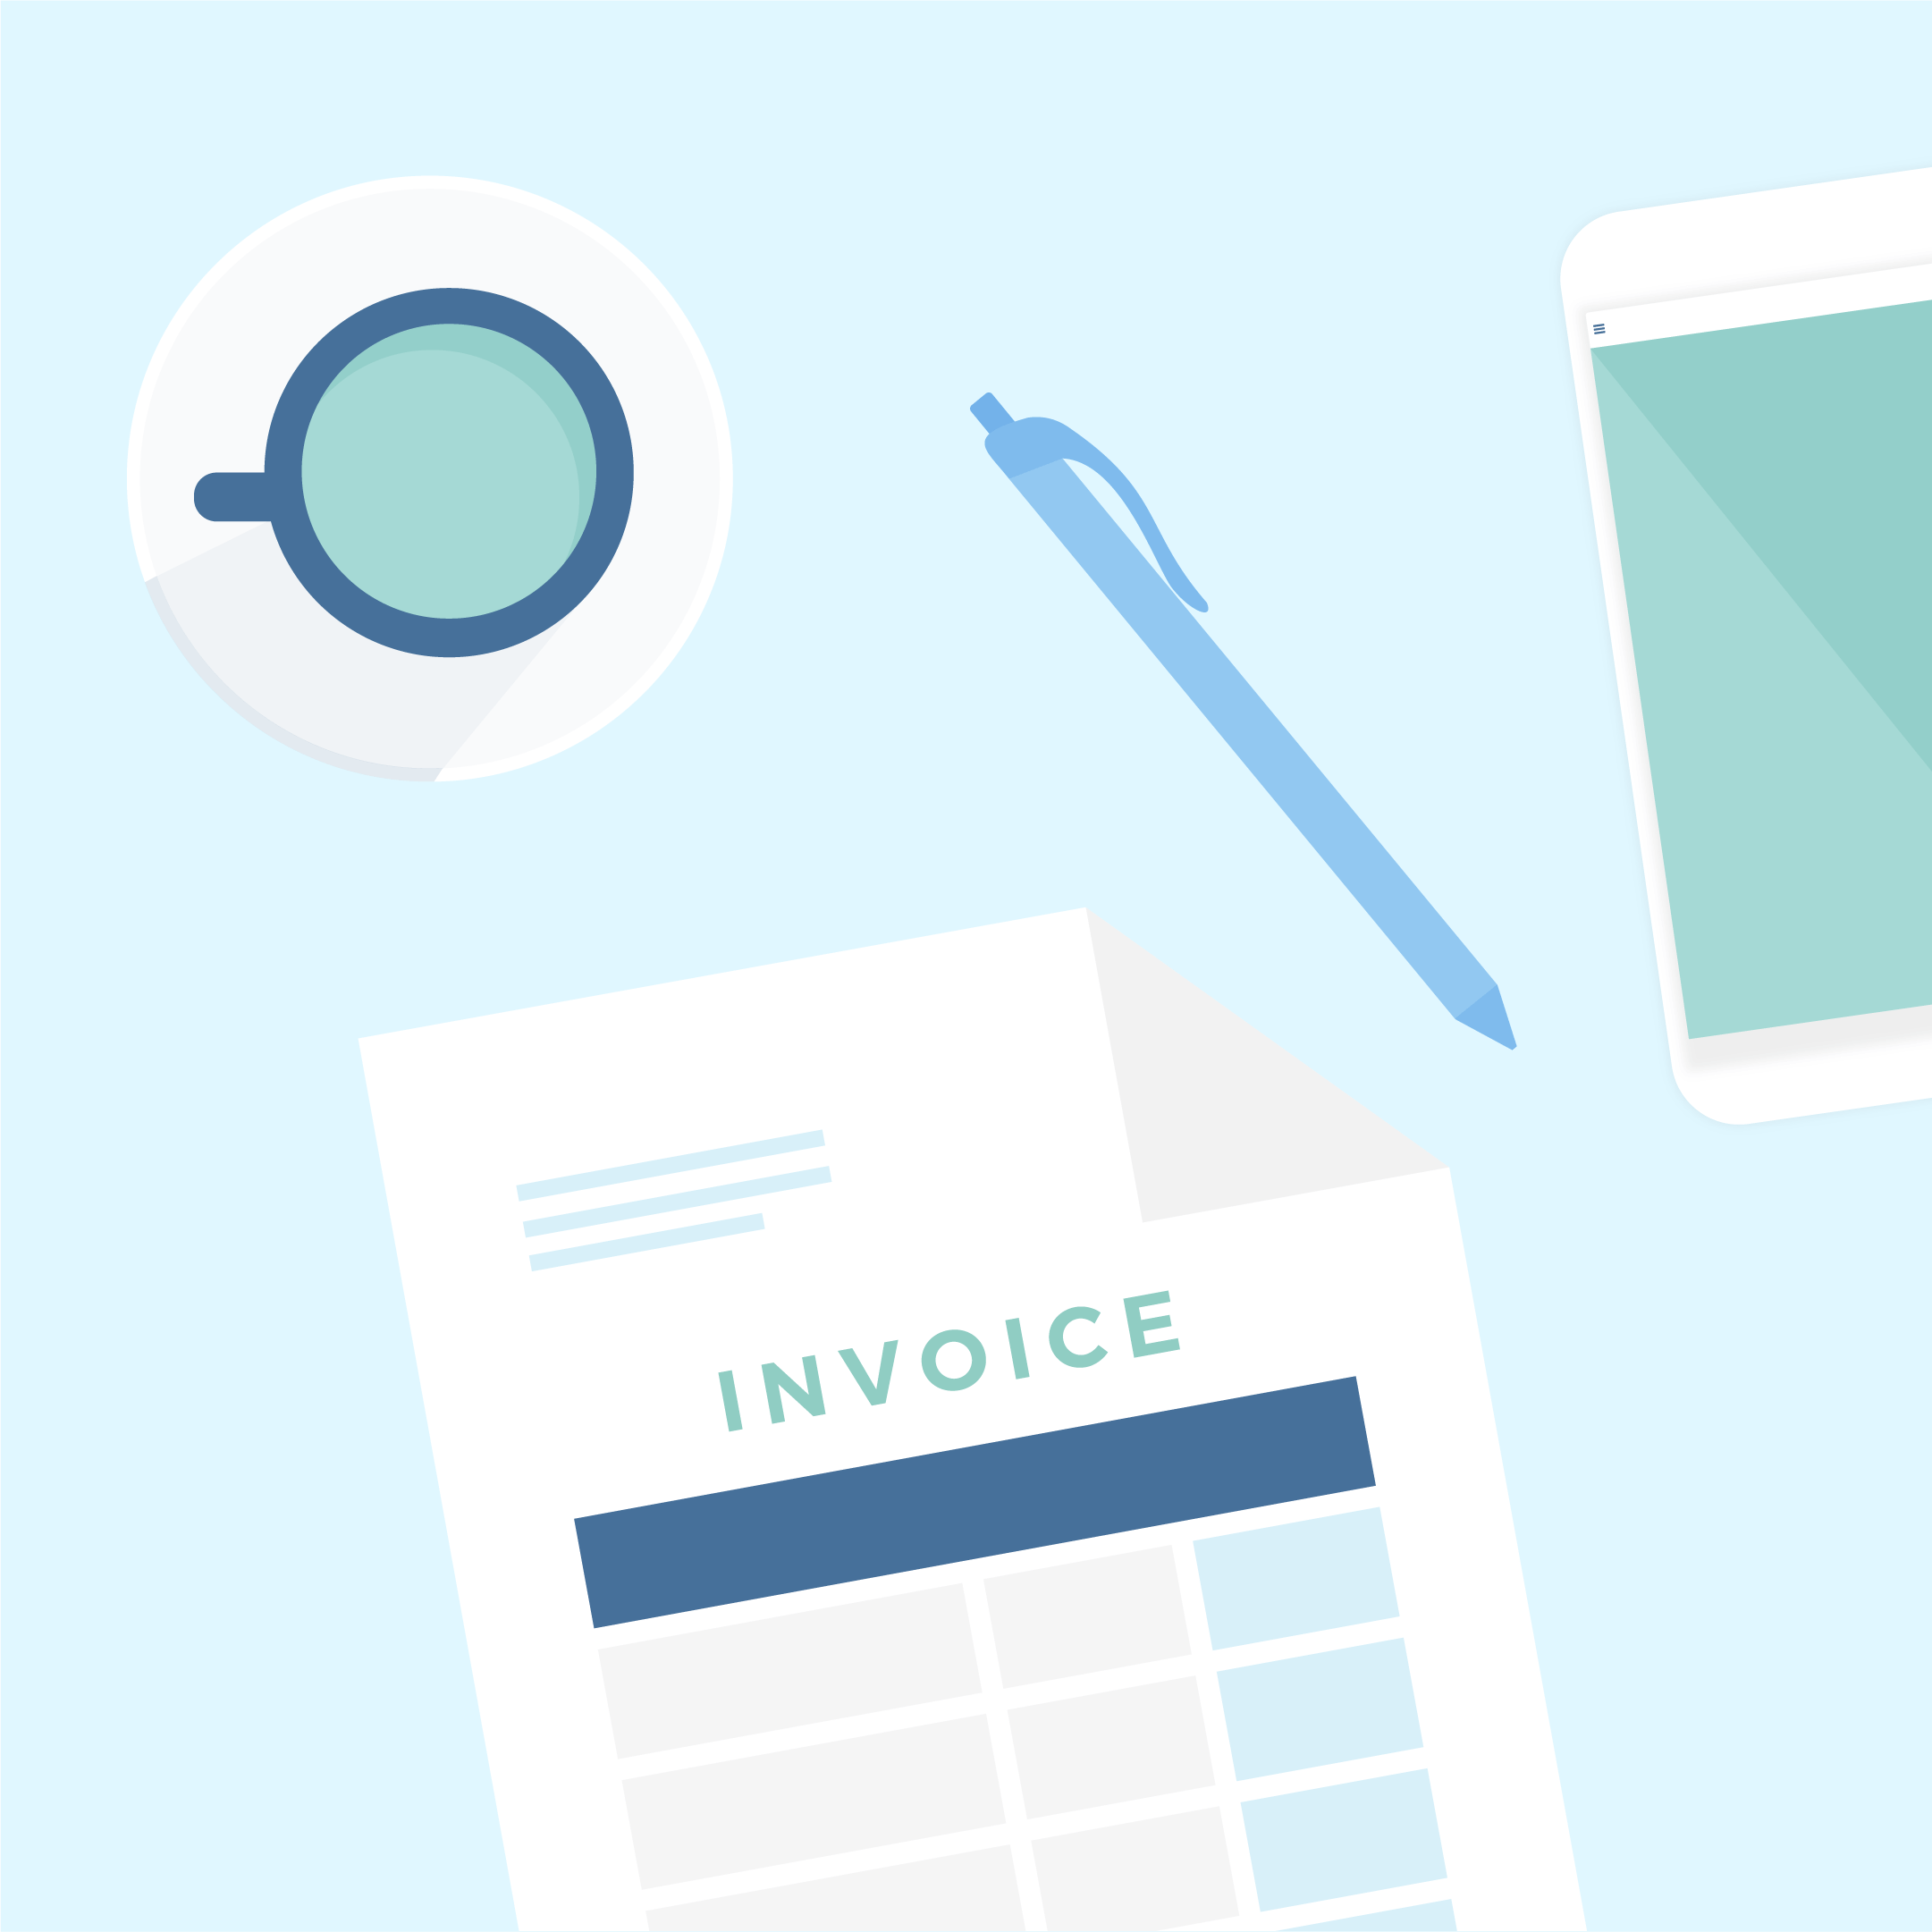 Flat lay, top view vector illustration of a desk in mint green & blue colours, including a cup with green tea on a saucer, blue ballpoint pen, invoice & mobile phone in flat design style